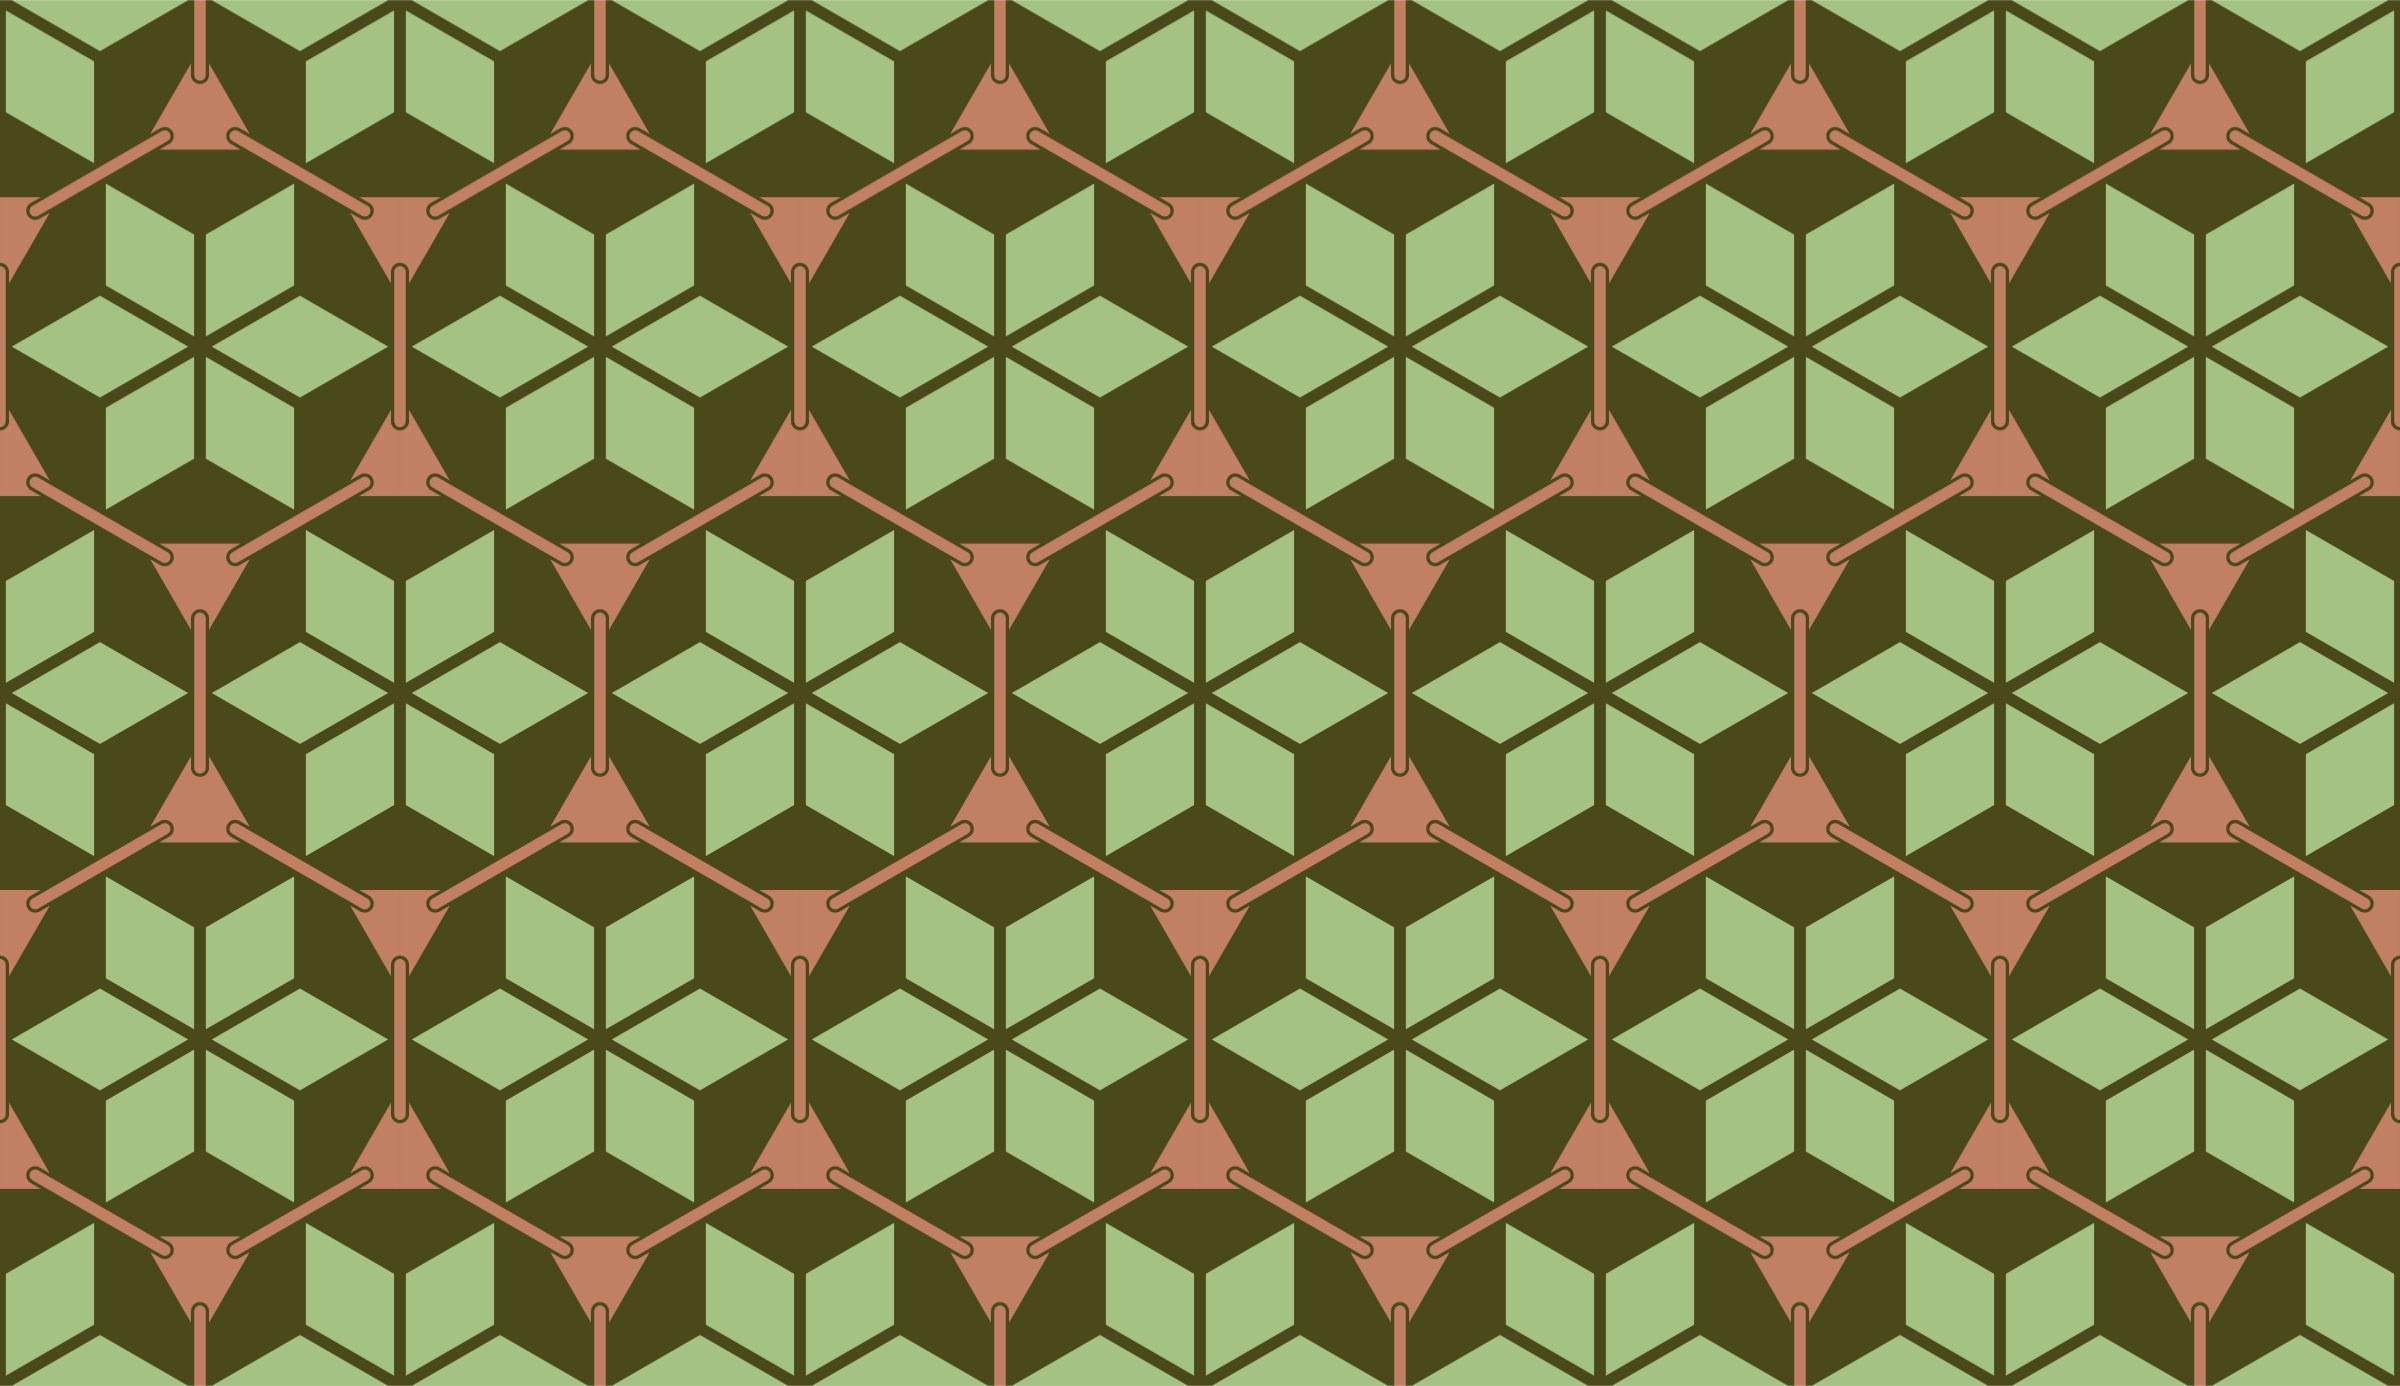 Background pattern 262 by Firkin